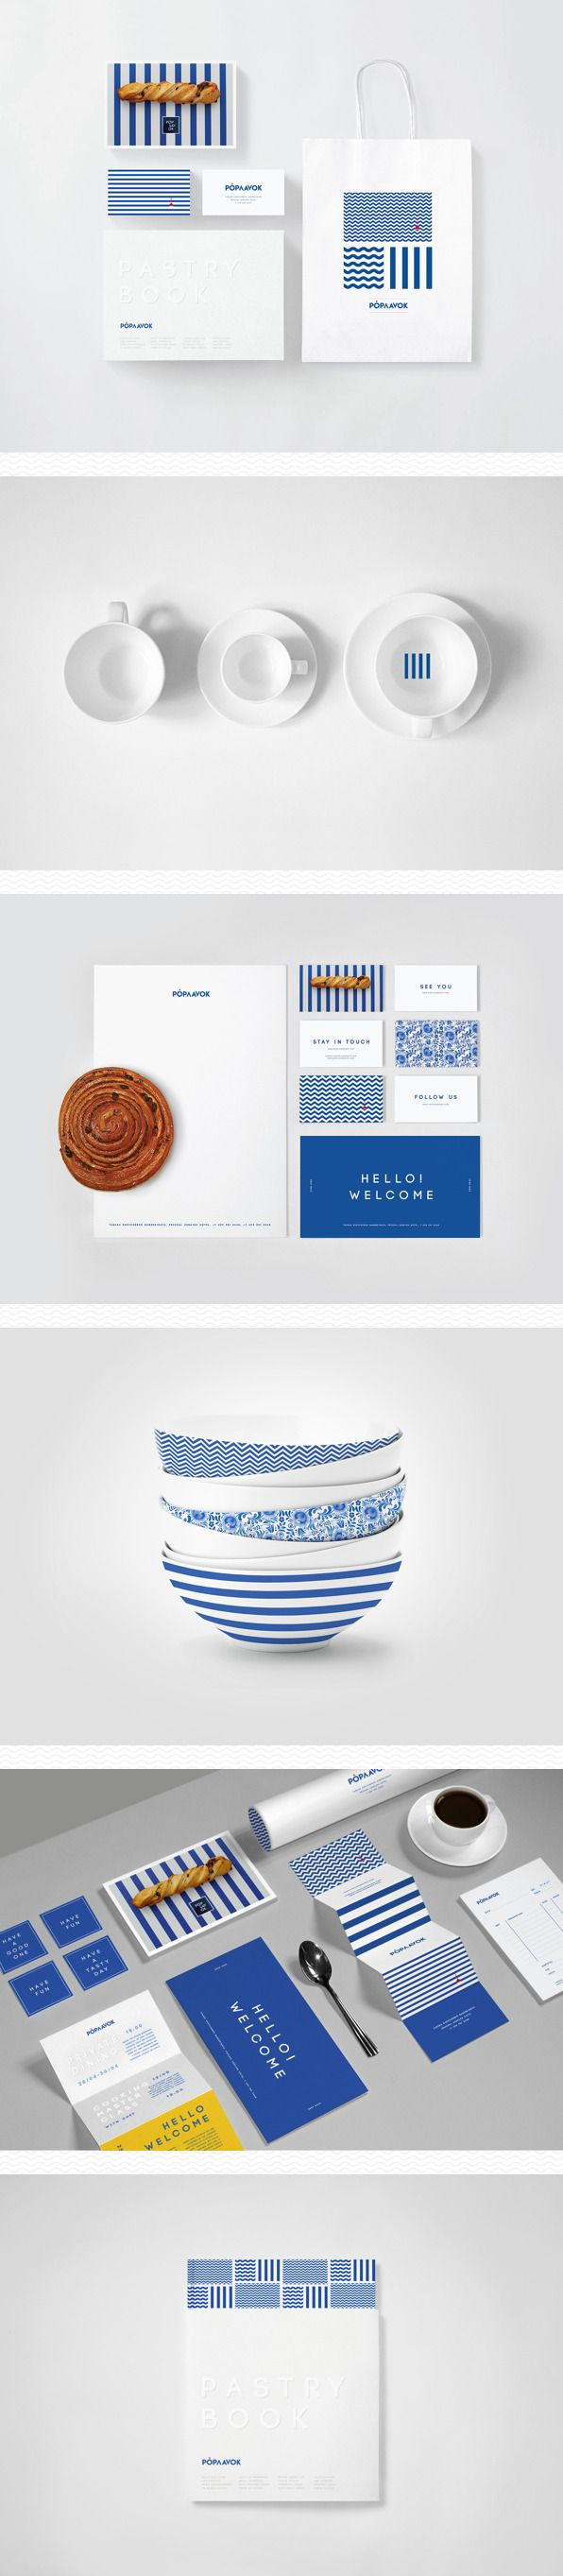 Poplavok identity | #stationary #corporate #design #corporatedesign #identity #branding #marketing < repinned by www.BlickeDeeler.de | Take a look at www.LogoGestaltung-Hamburg.de